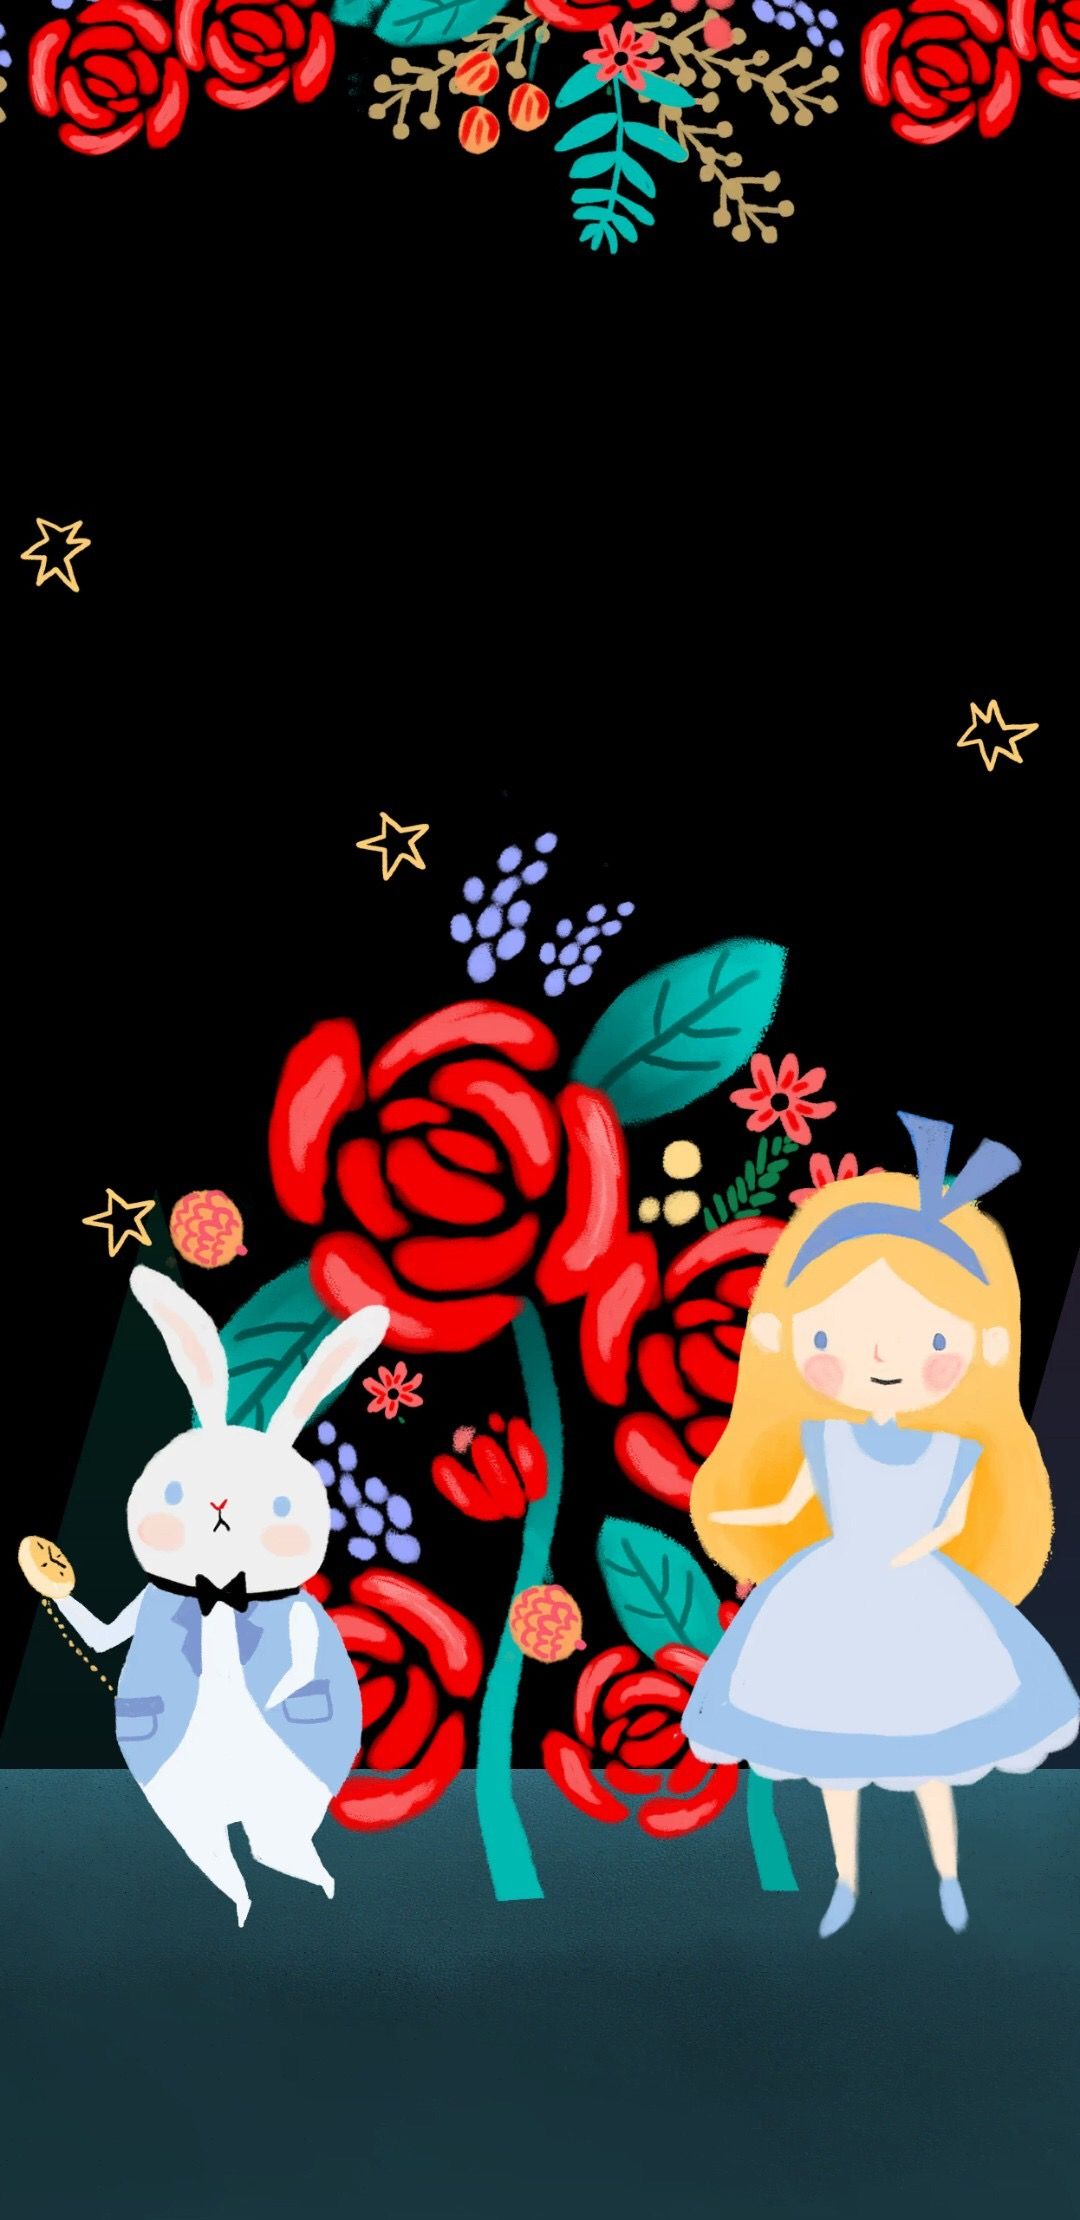 Alice In Wonderland Wallpaper By Dajeong Kim Backgrounds Phone